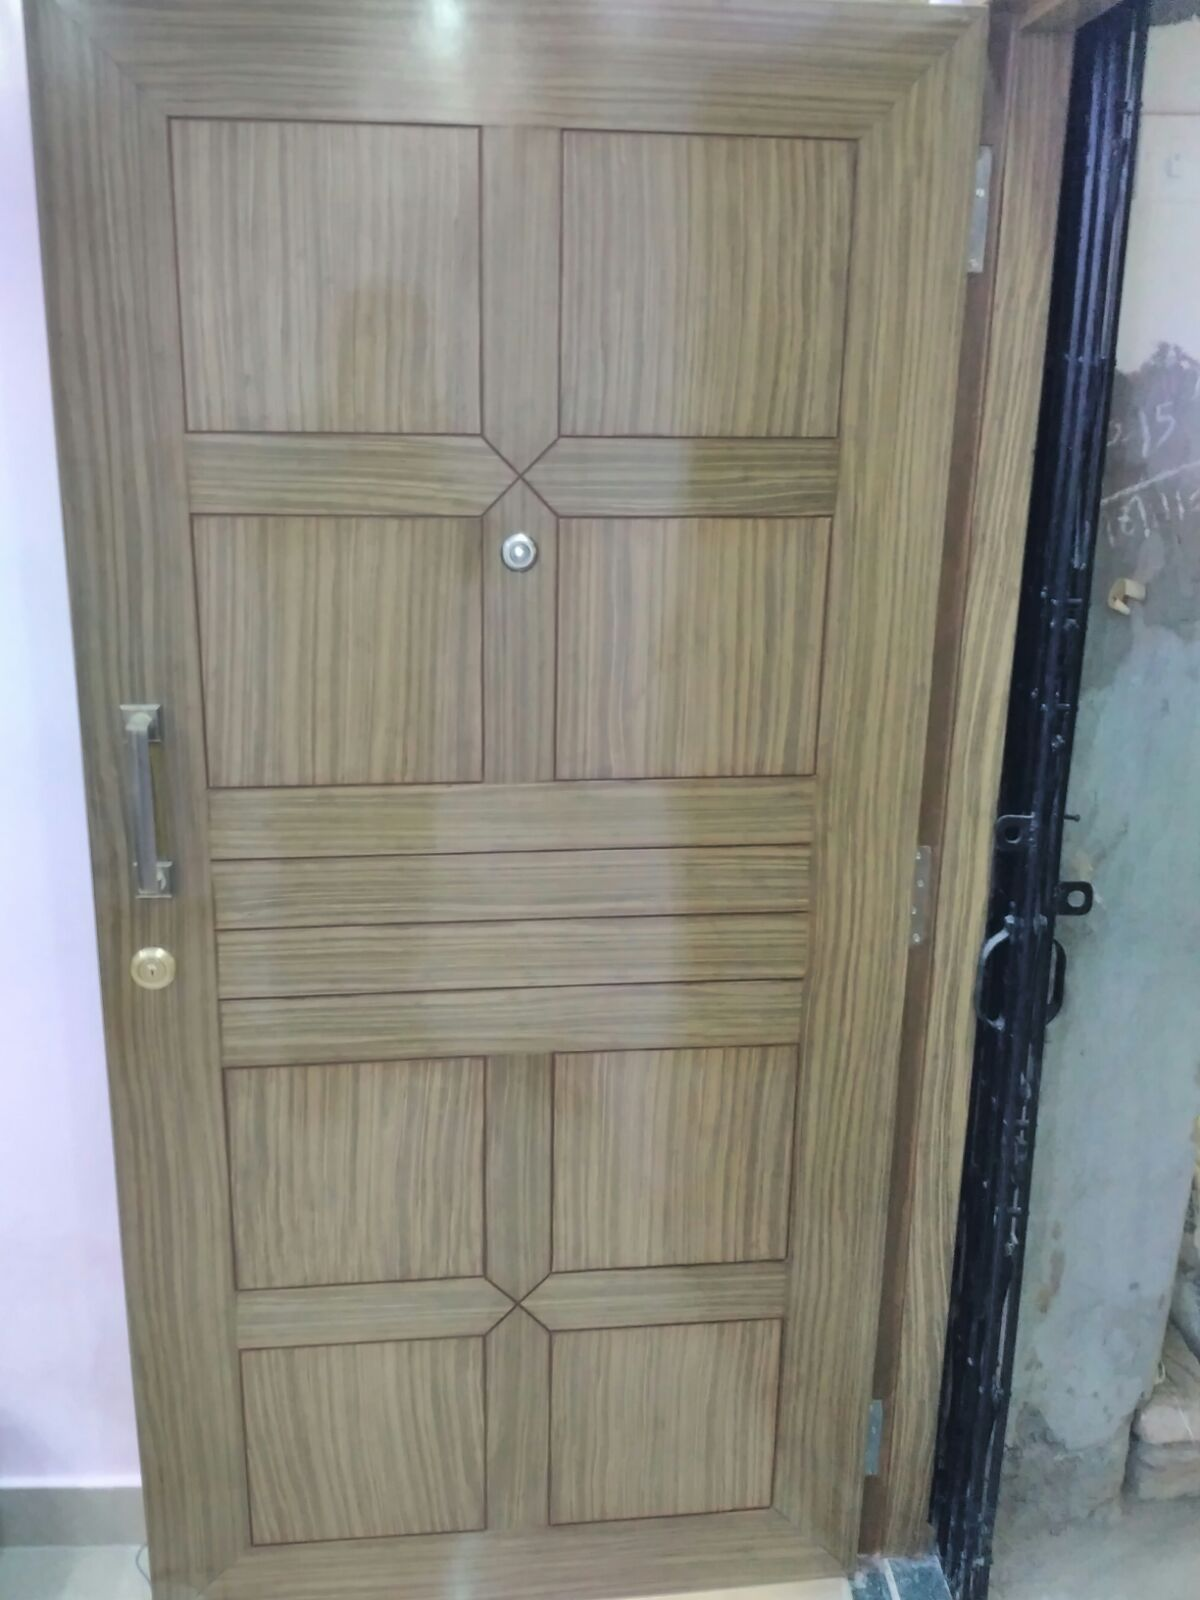 Veneer design on main door efficient enterprise for Home main door interior design